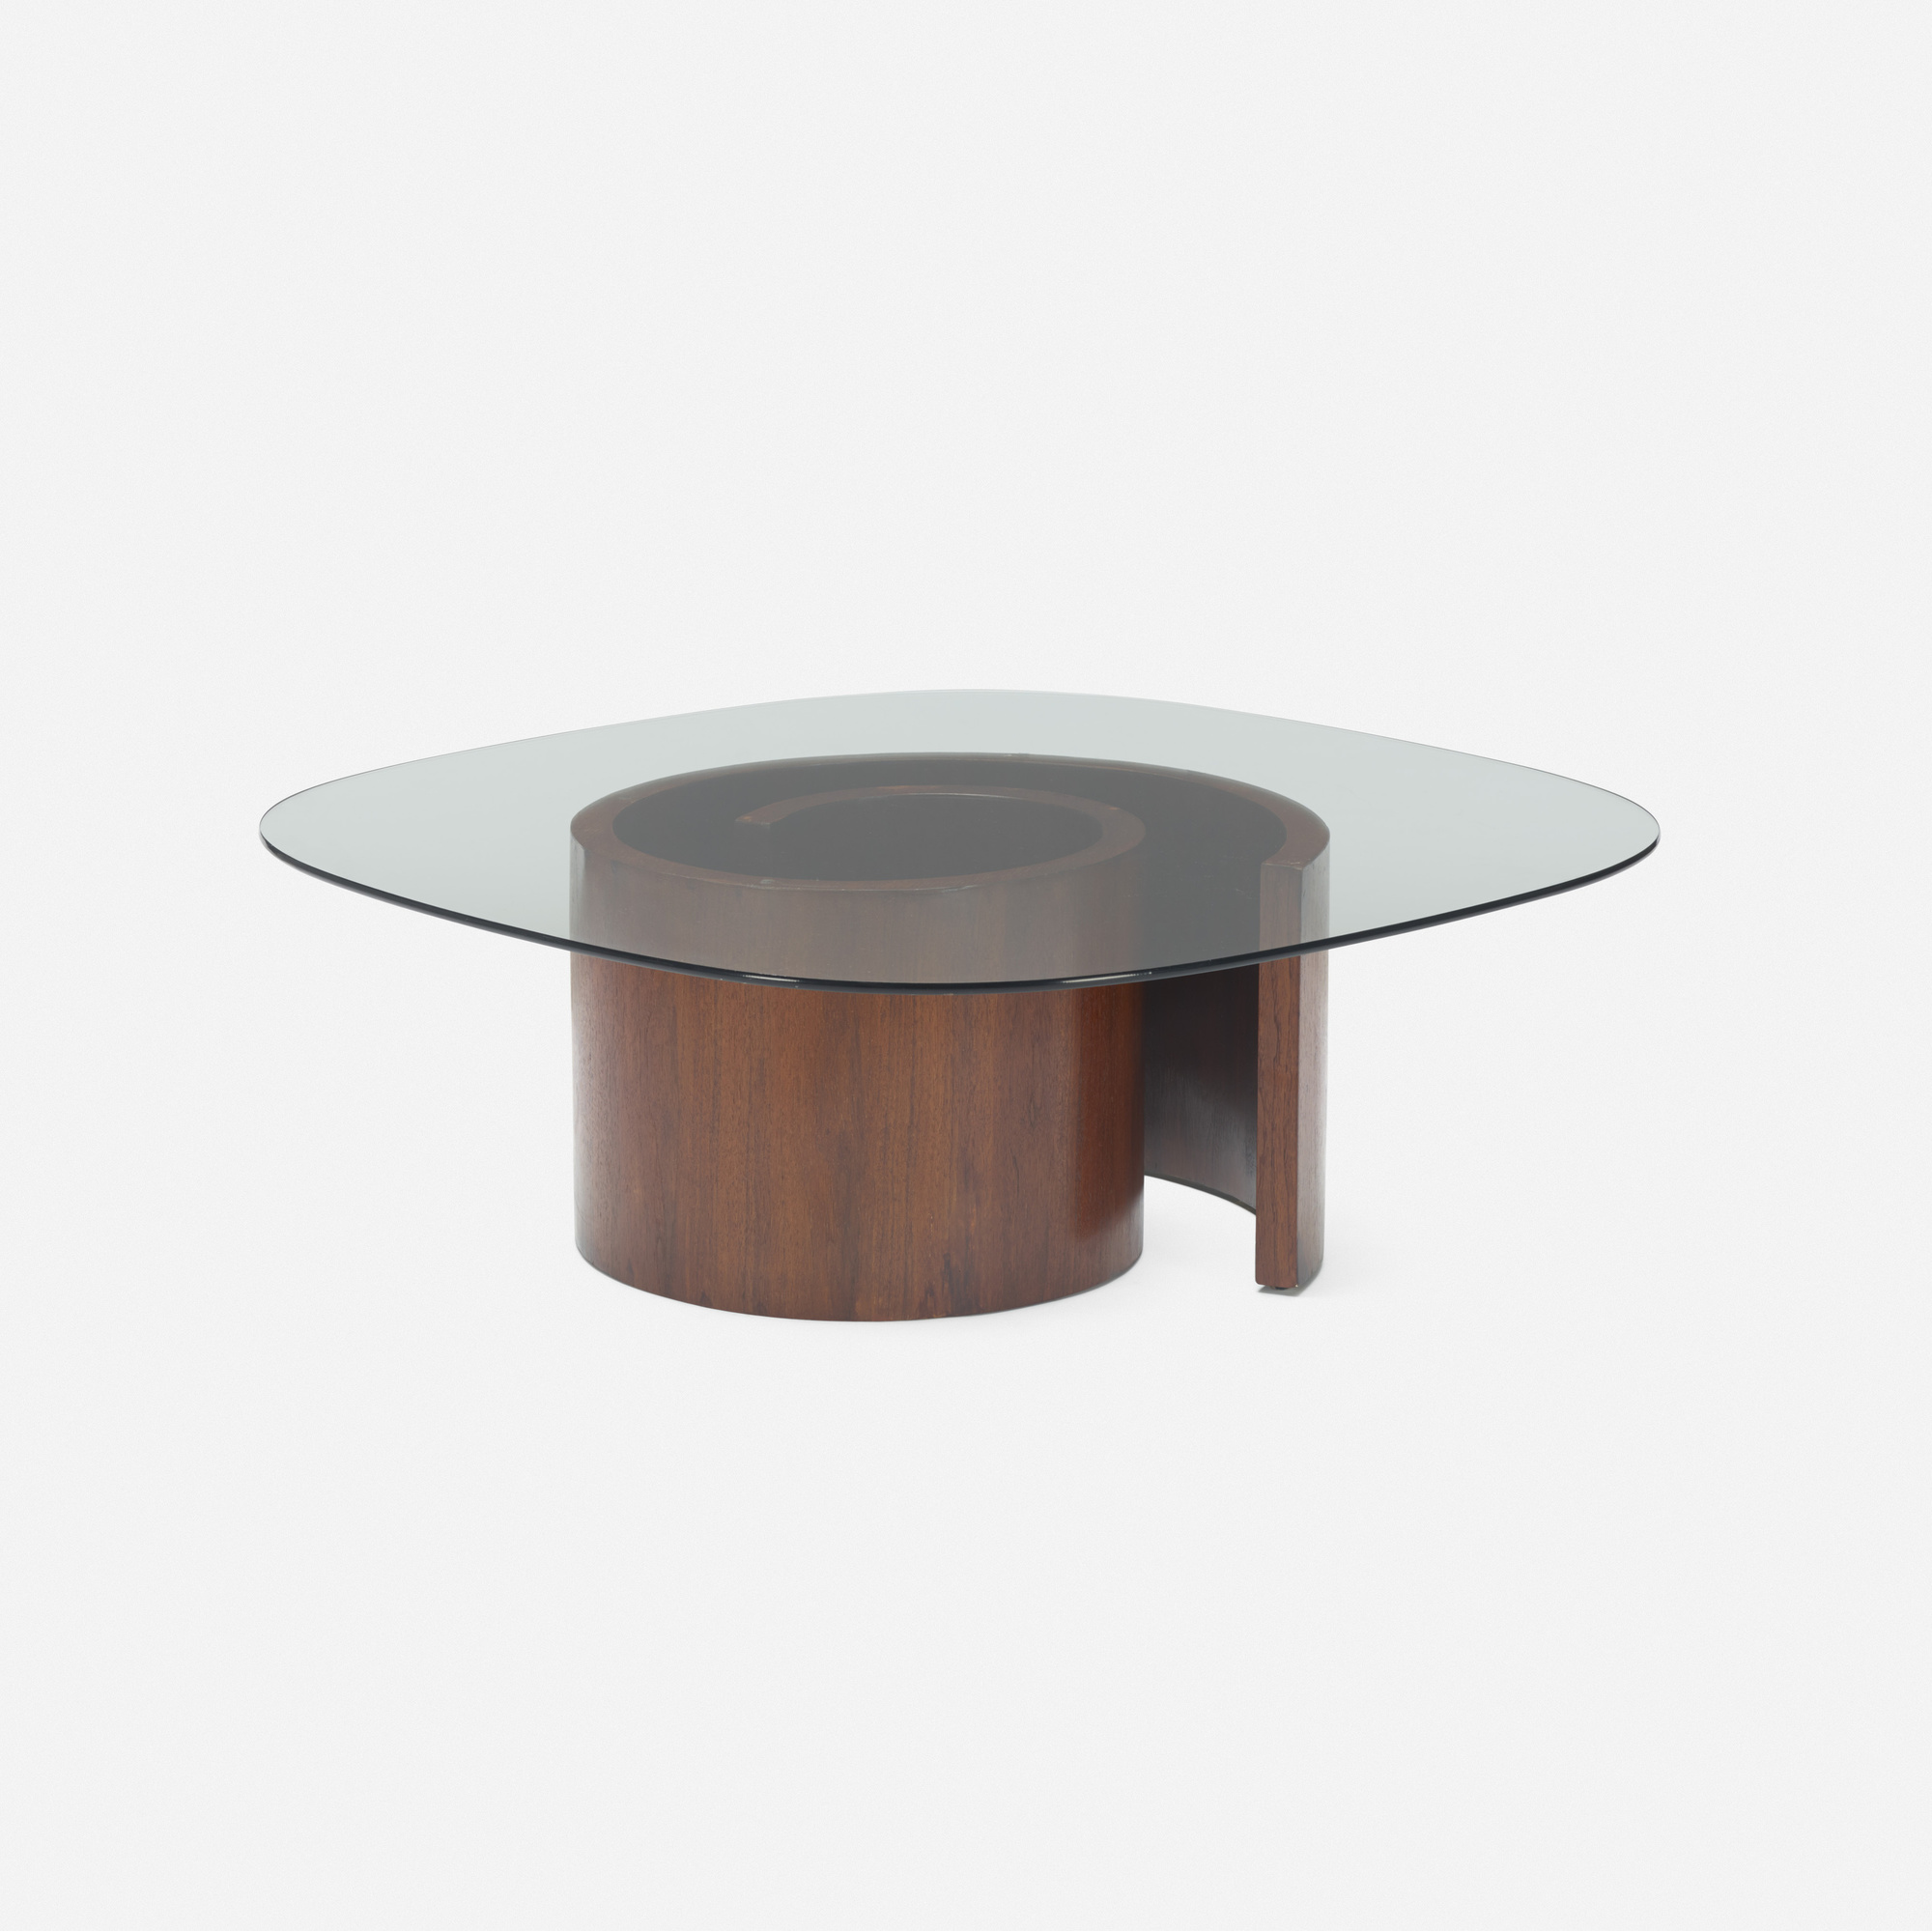 340 Vladimir Kagan coffee table Mass Modern Day 1 10 August